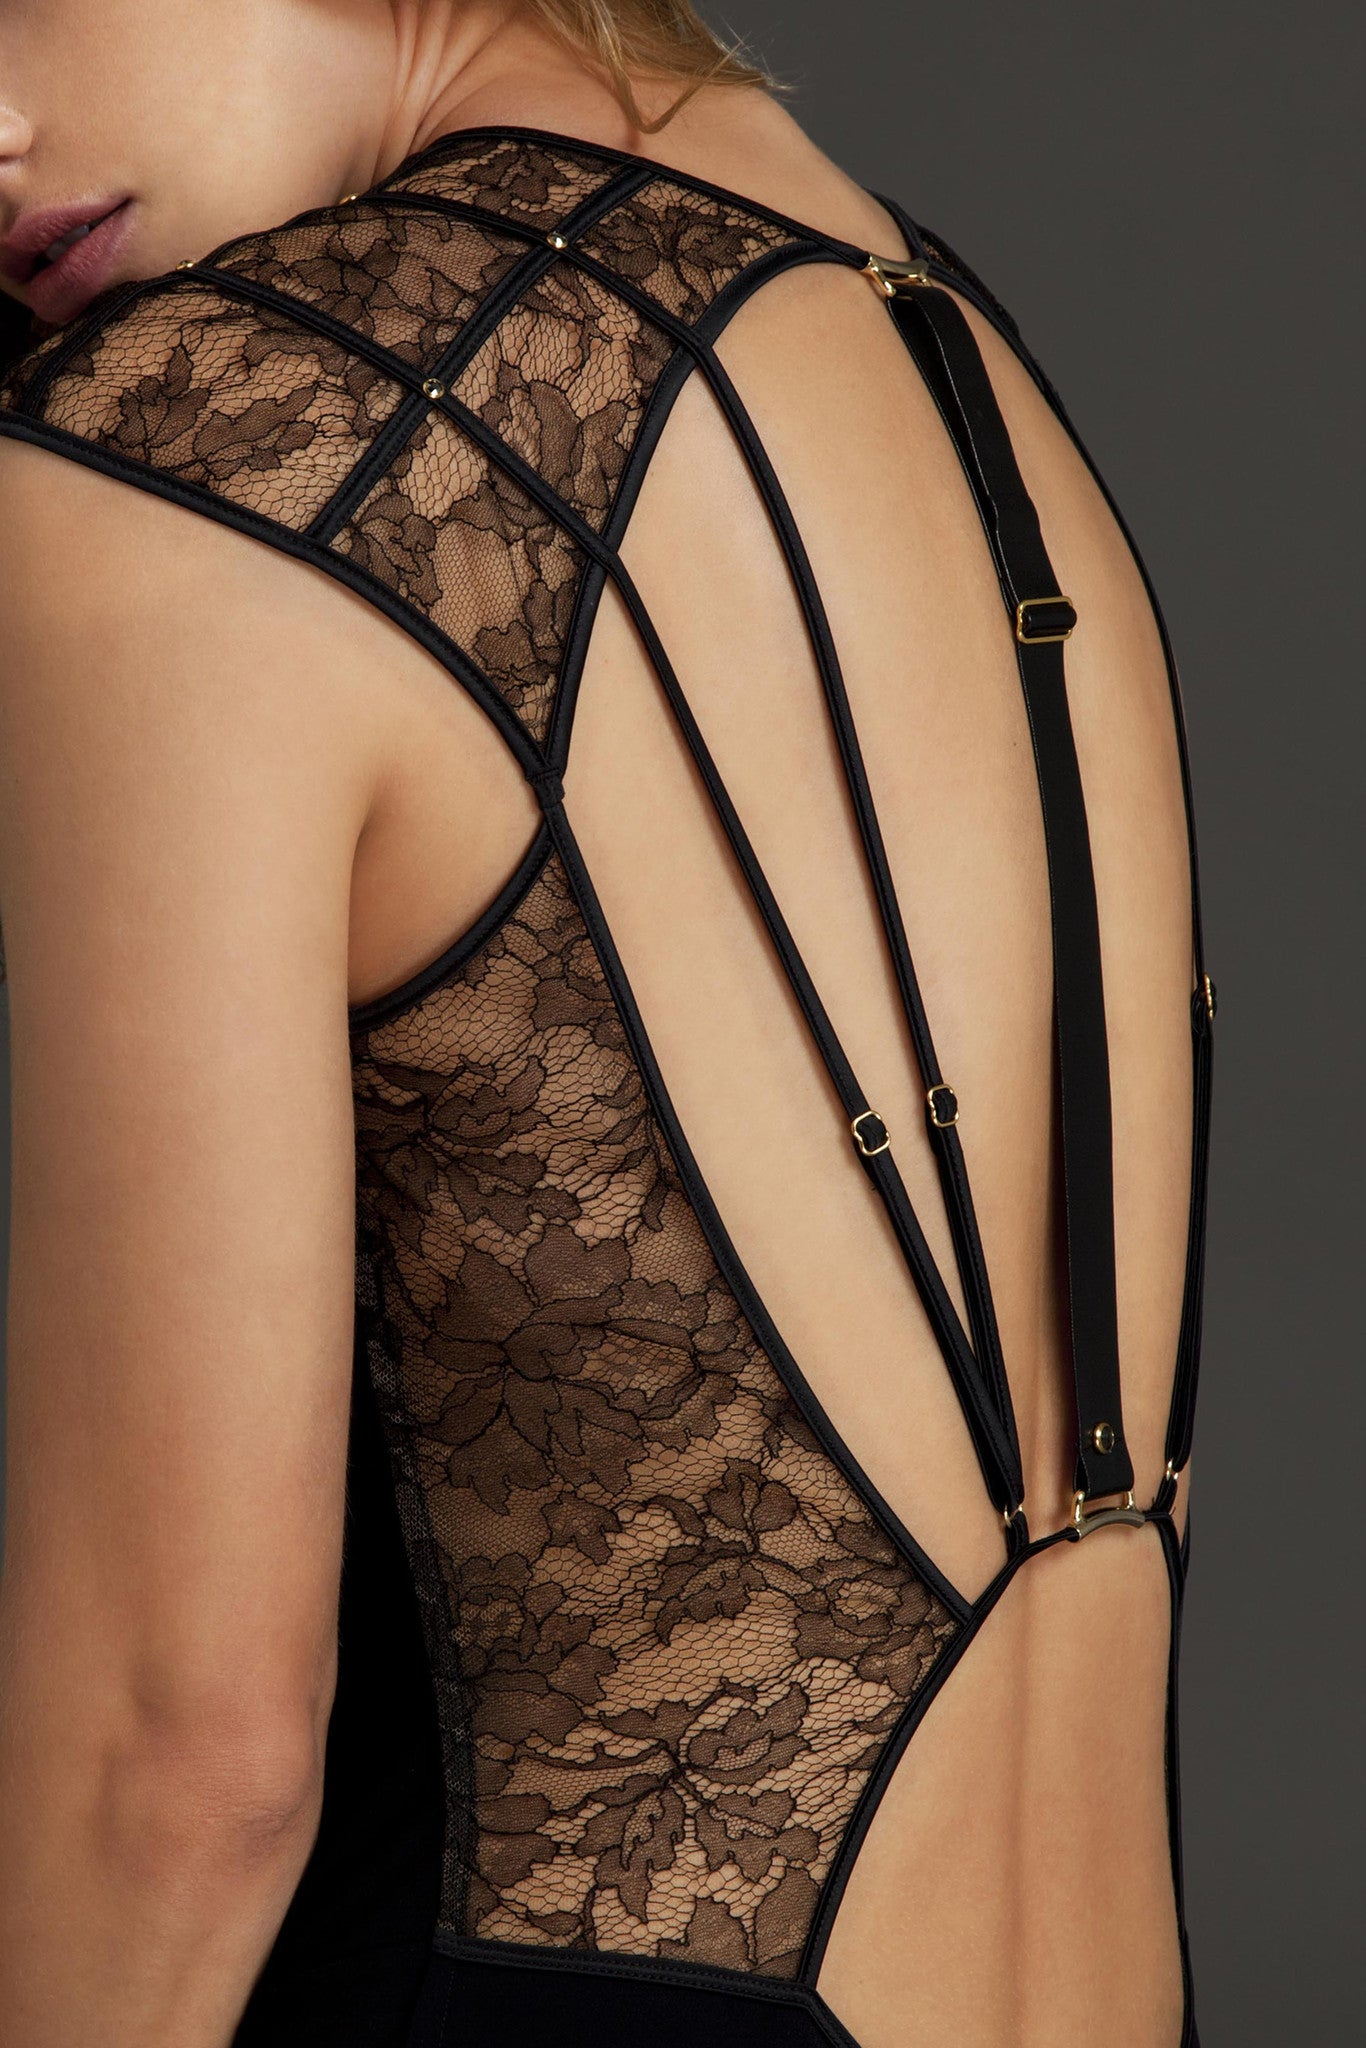 Xena Black designer bodysuit, strapping back detail with black lace panels, luxury lingerie by Tatu Couture